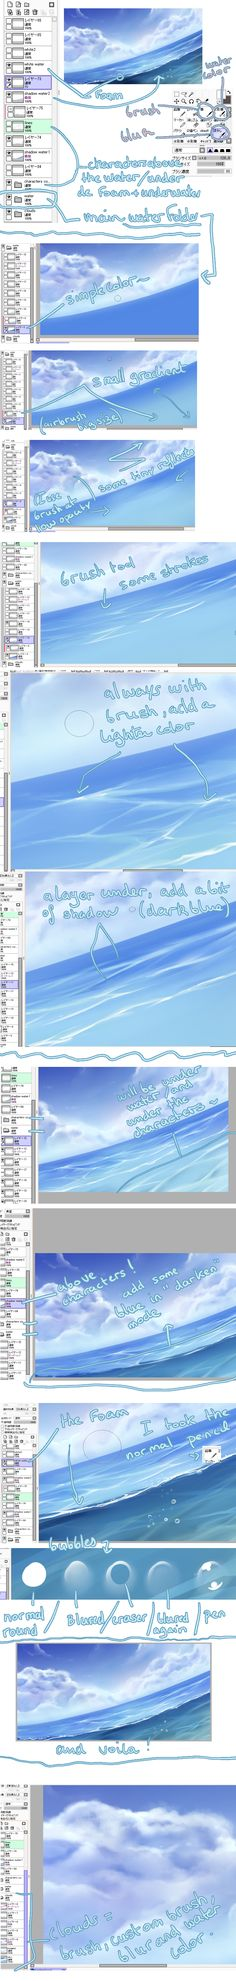 water tutorial by kuro-mai.deviantart.com on @deviantART ✤ || CHARACTER DESIGN REFERENCES | キャラクターデザイン |  • Find more at https://www.facebook.com/CharacterDesignReferences & http://www.pinterest.com/characterdesigh and learn how to draw: concept art, bandes dessinées, dessin animé, çizgi film #animation #banda #desenhada #toons #manga #BD #historieta #strip #settei #fumetti #anime #cartoni #animati #comics #cartoon from the art of Disney, Pixar, Studio Ghibli and more || ✤